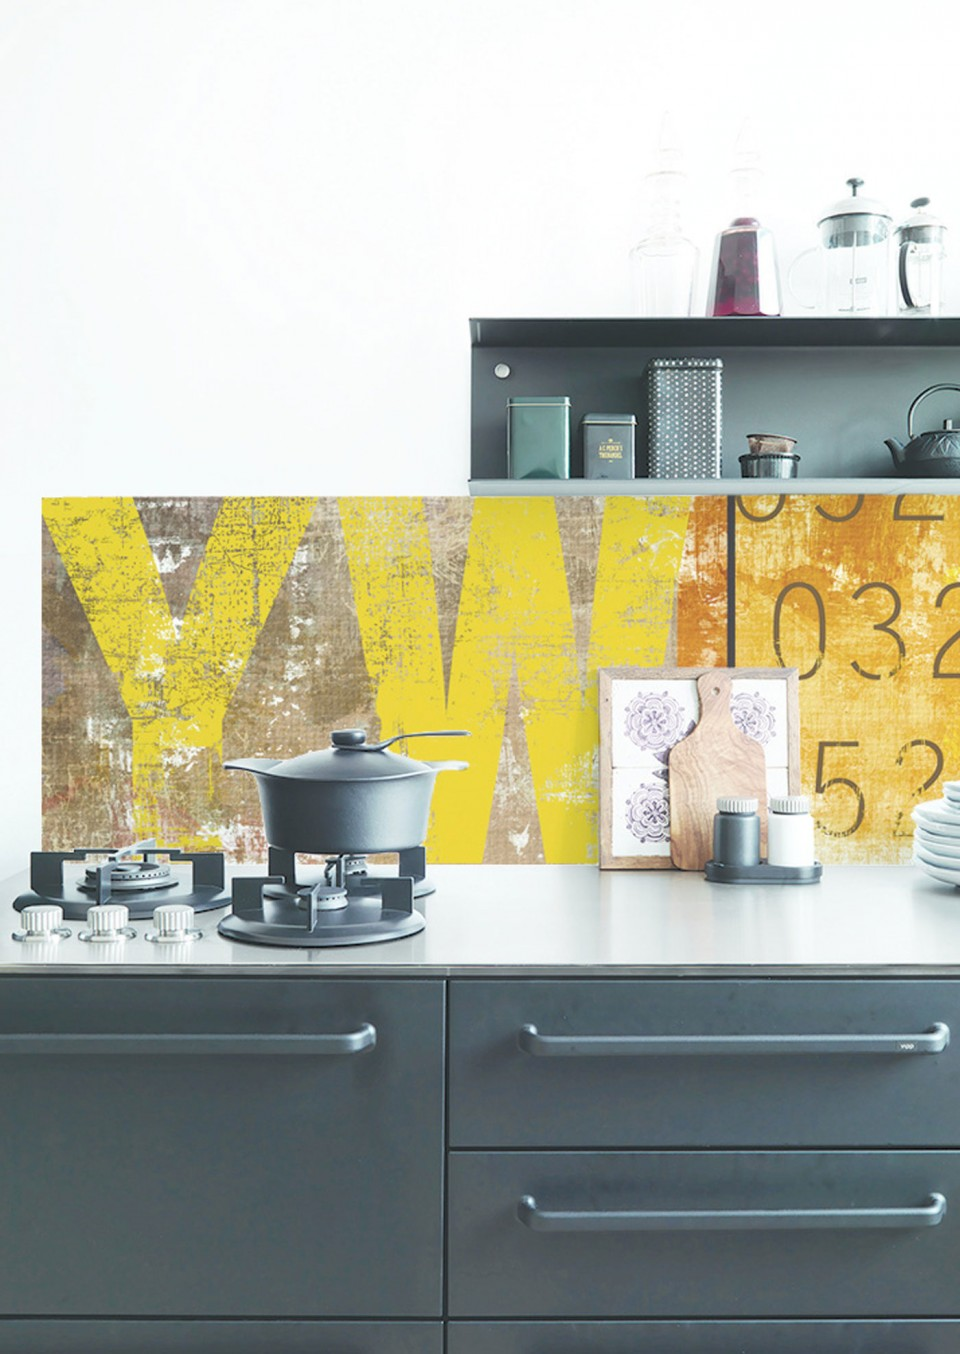 4lime-lace_kitchenwalls-wallpaper-splashback-fresco.jpg